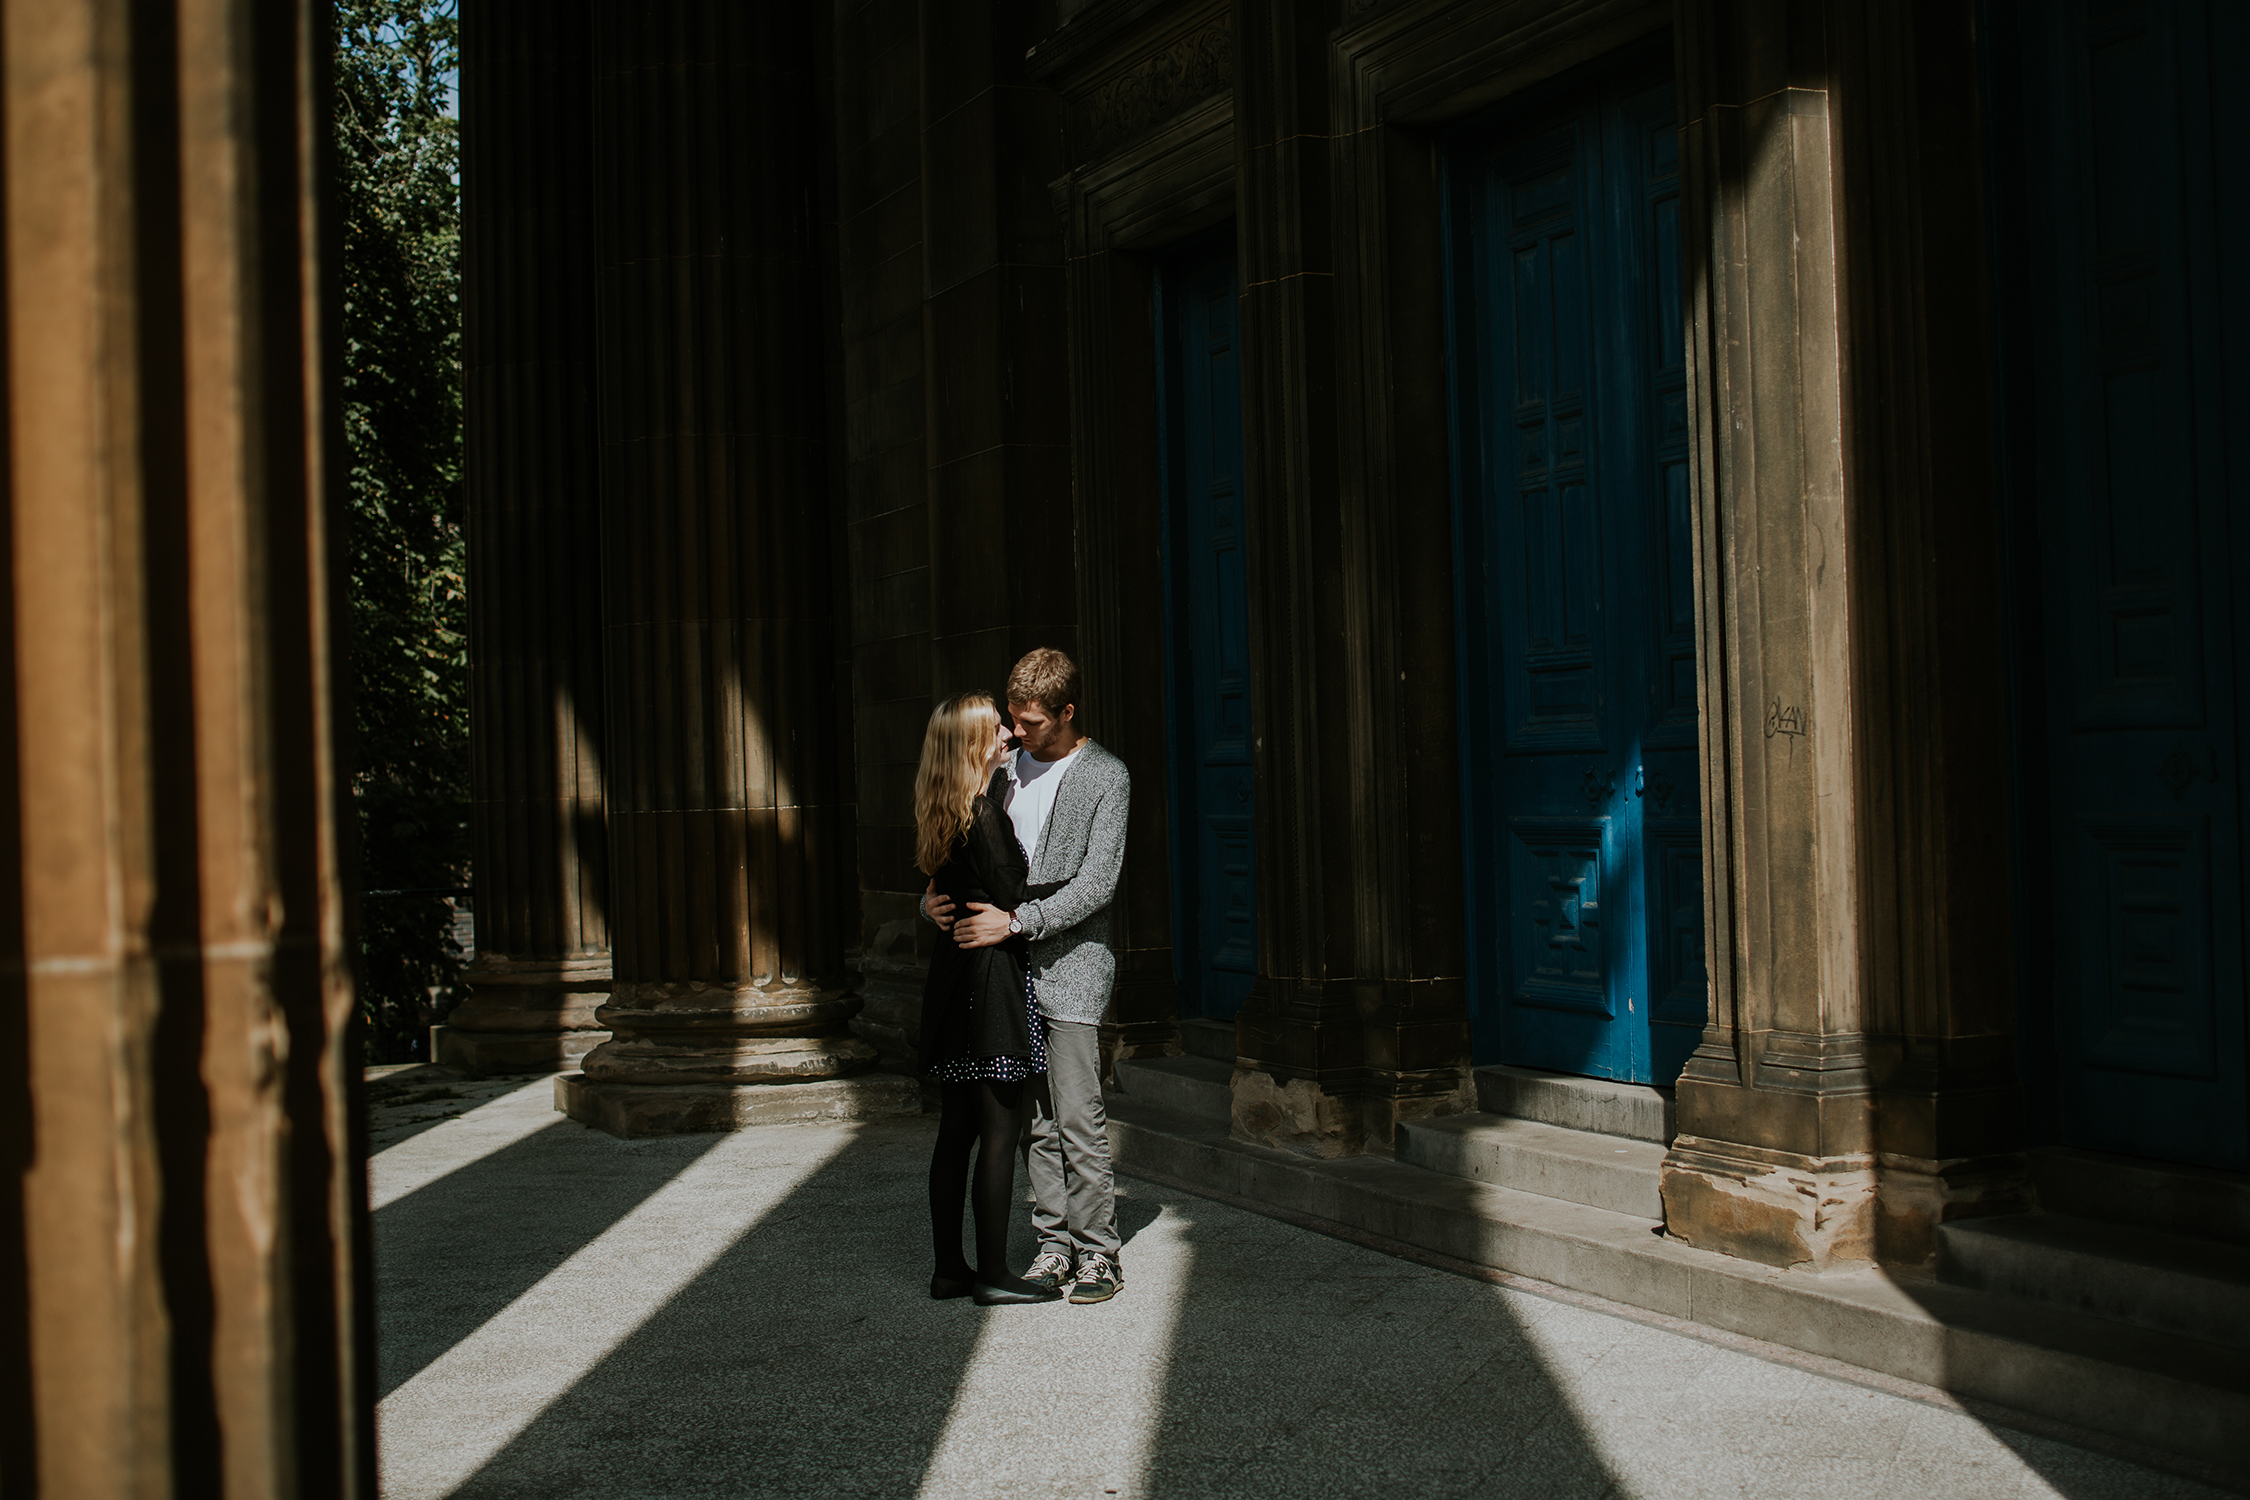 romantic_city_elopement_glasgow_edinburgh_wedding_photographer_16